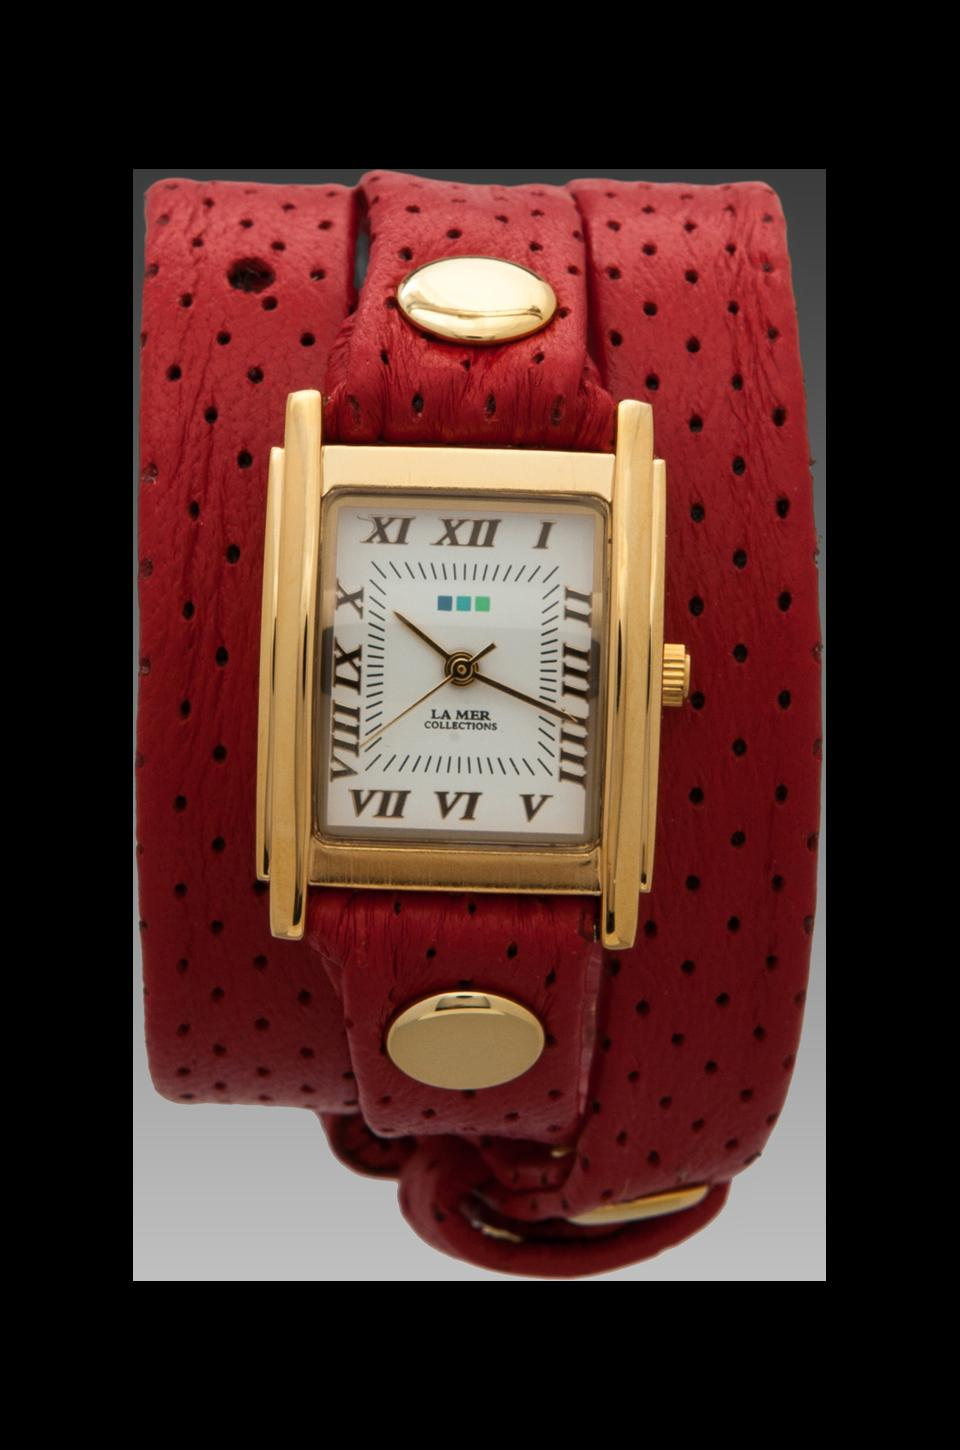 La Mer Perforated Wrap in Red/Gold